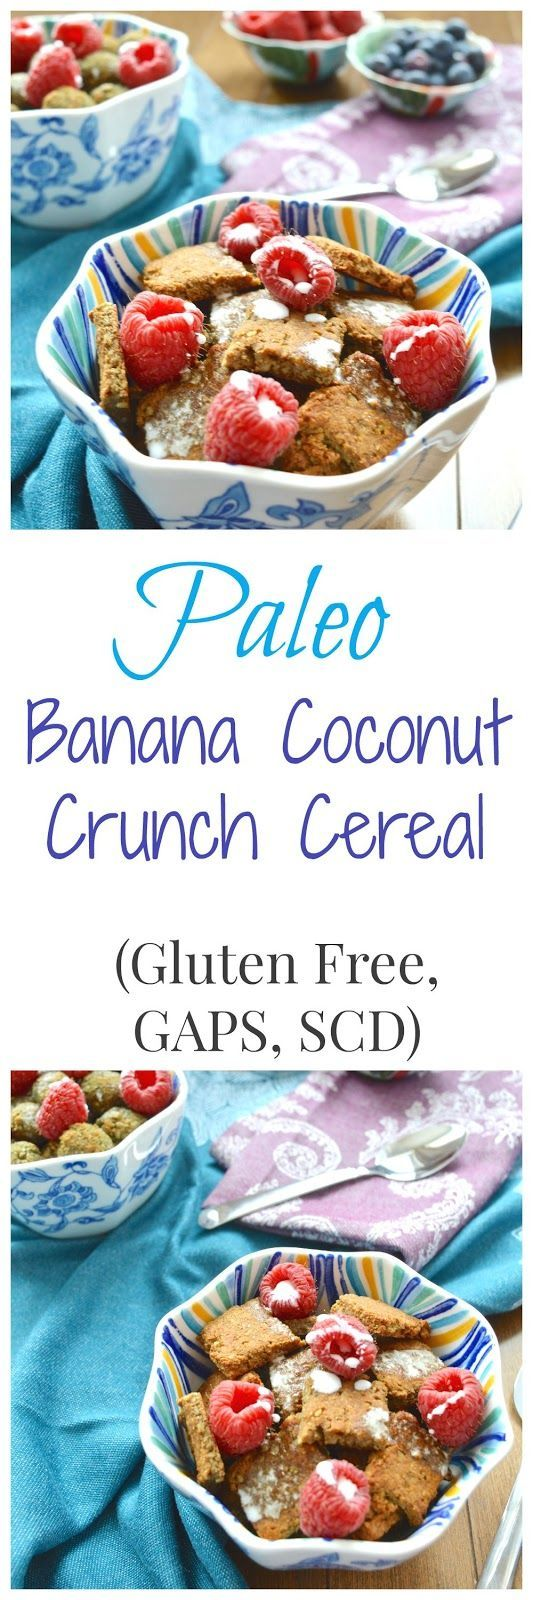 Pure and Simple Nourishment : Banana Coconut Crunch Cereal (Paleo, GAPS, SCD, Gluten Free, Dairy Free, Nut Free, Egg Free)